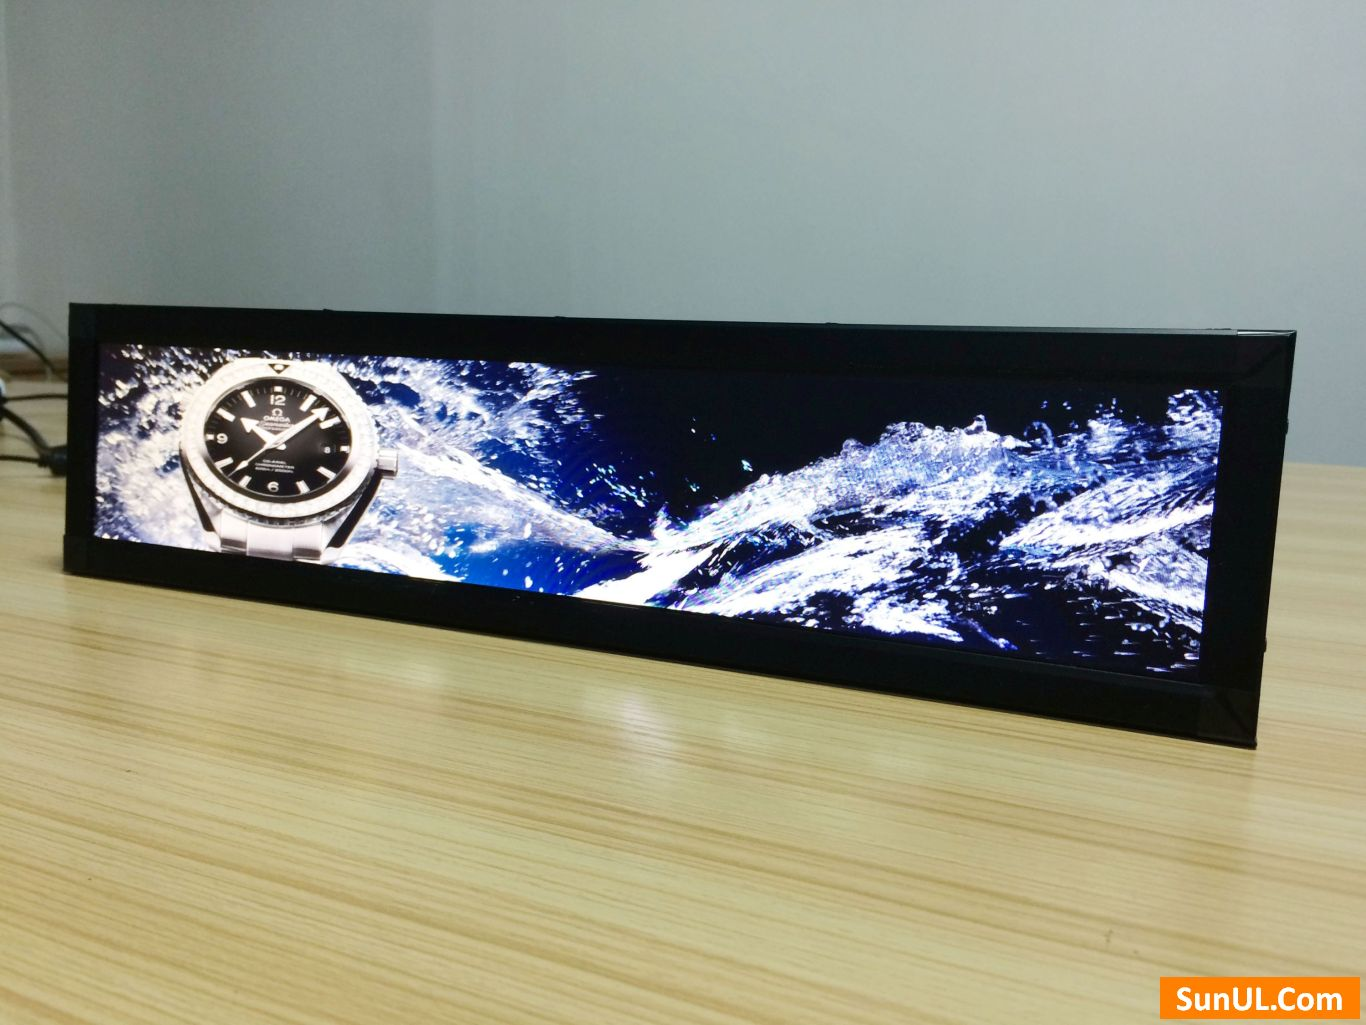 25.1 inch stretched LCD display